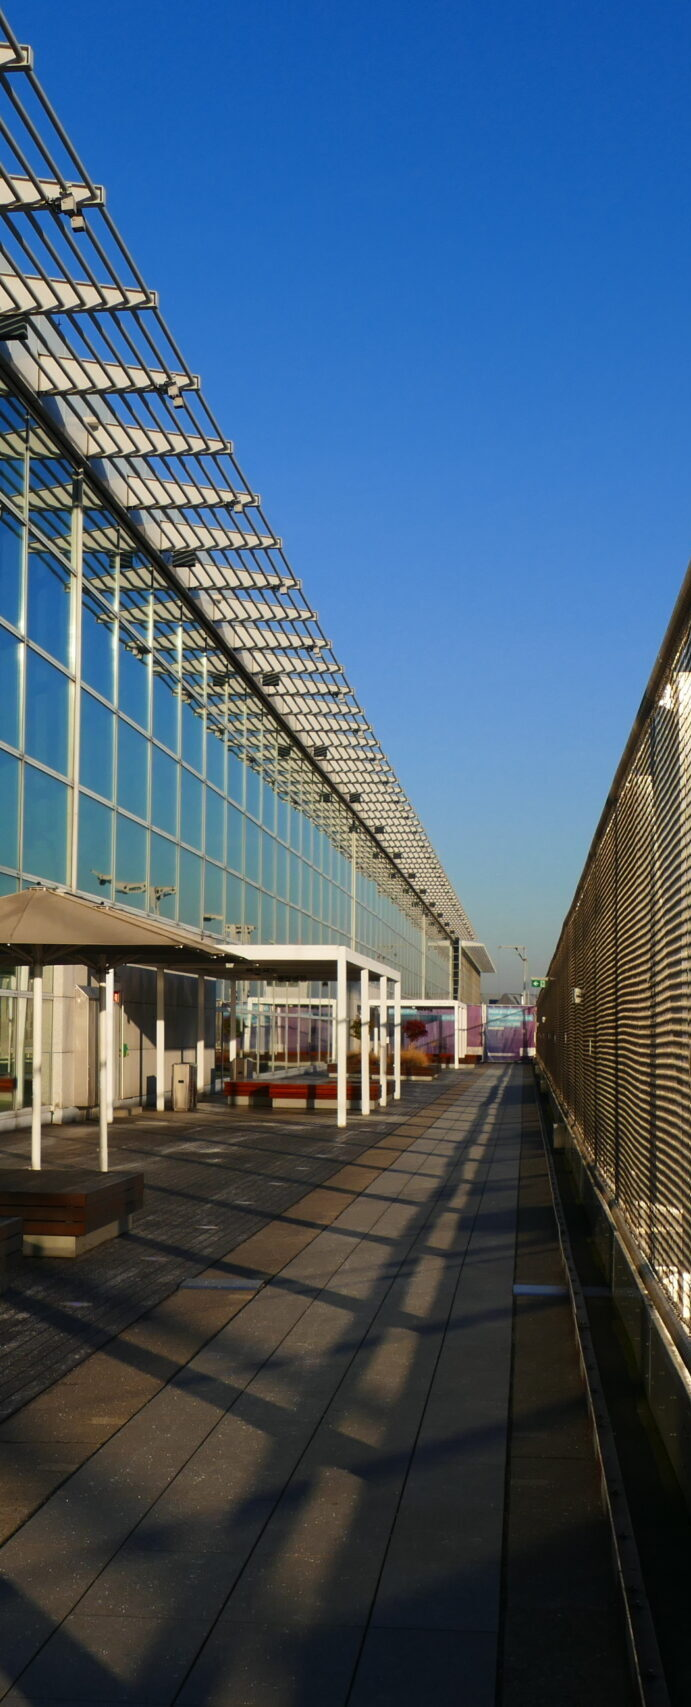 Terrace with modern architecture, security wire nets under blue sky and shadow structures on the floor.